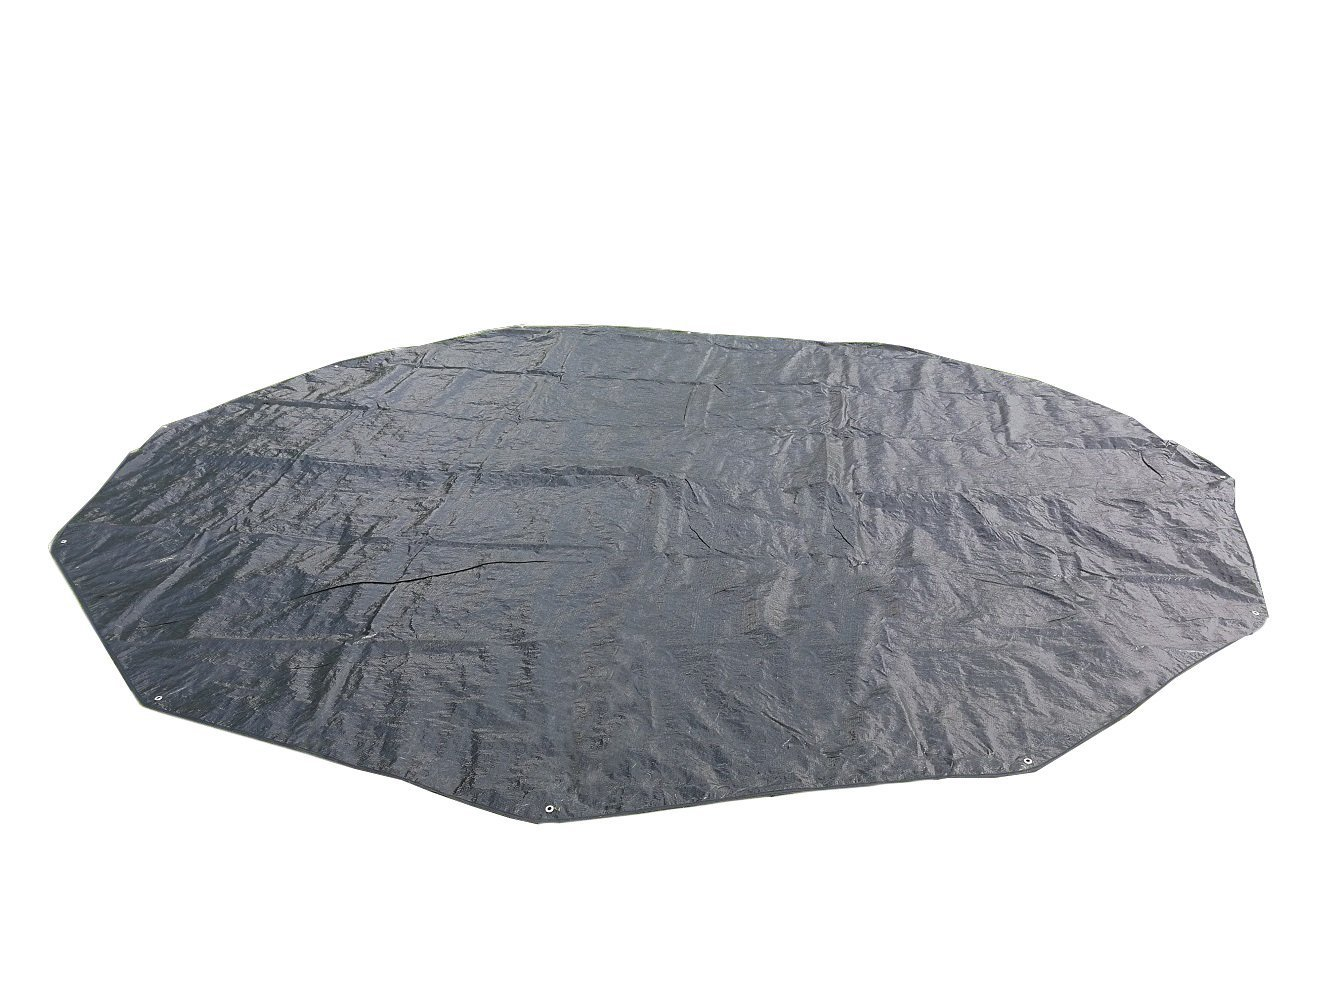 DANCHEL Tent Footprint Mat Tarps for Bell Tent, Color Black (6M=20ft) by DANCHEL